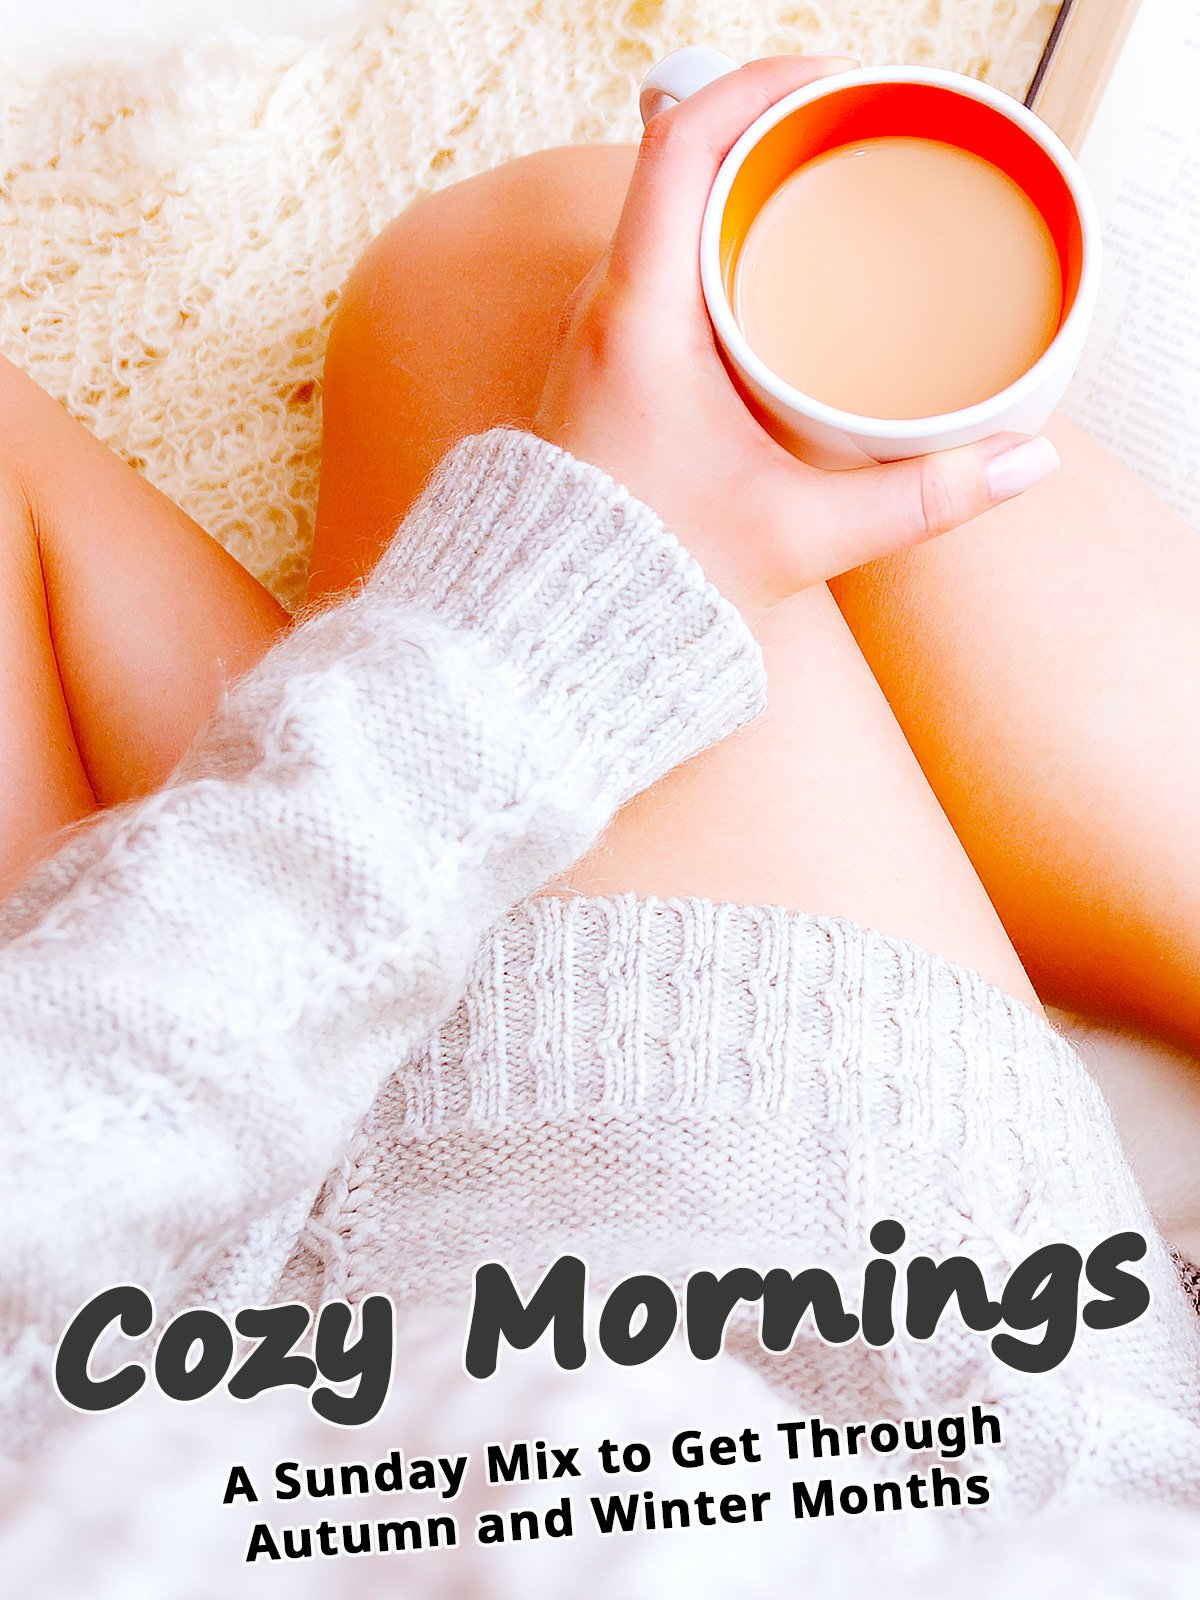 Cozy Mornings: A Sunday Mix to Get Through Autumn and Winter Months